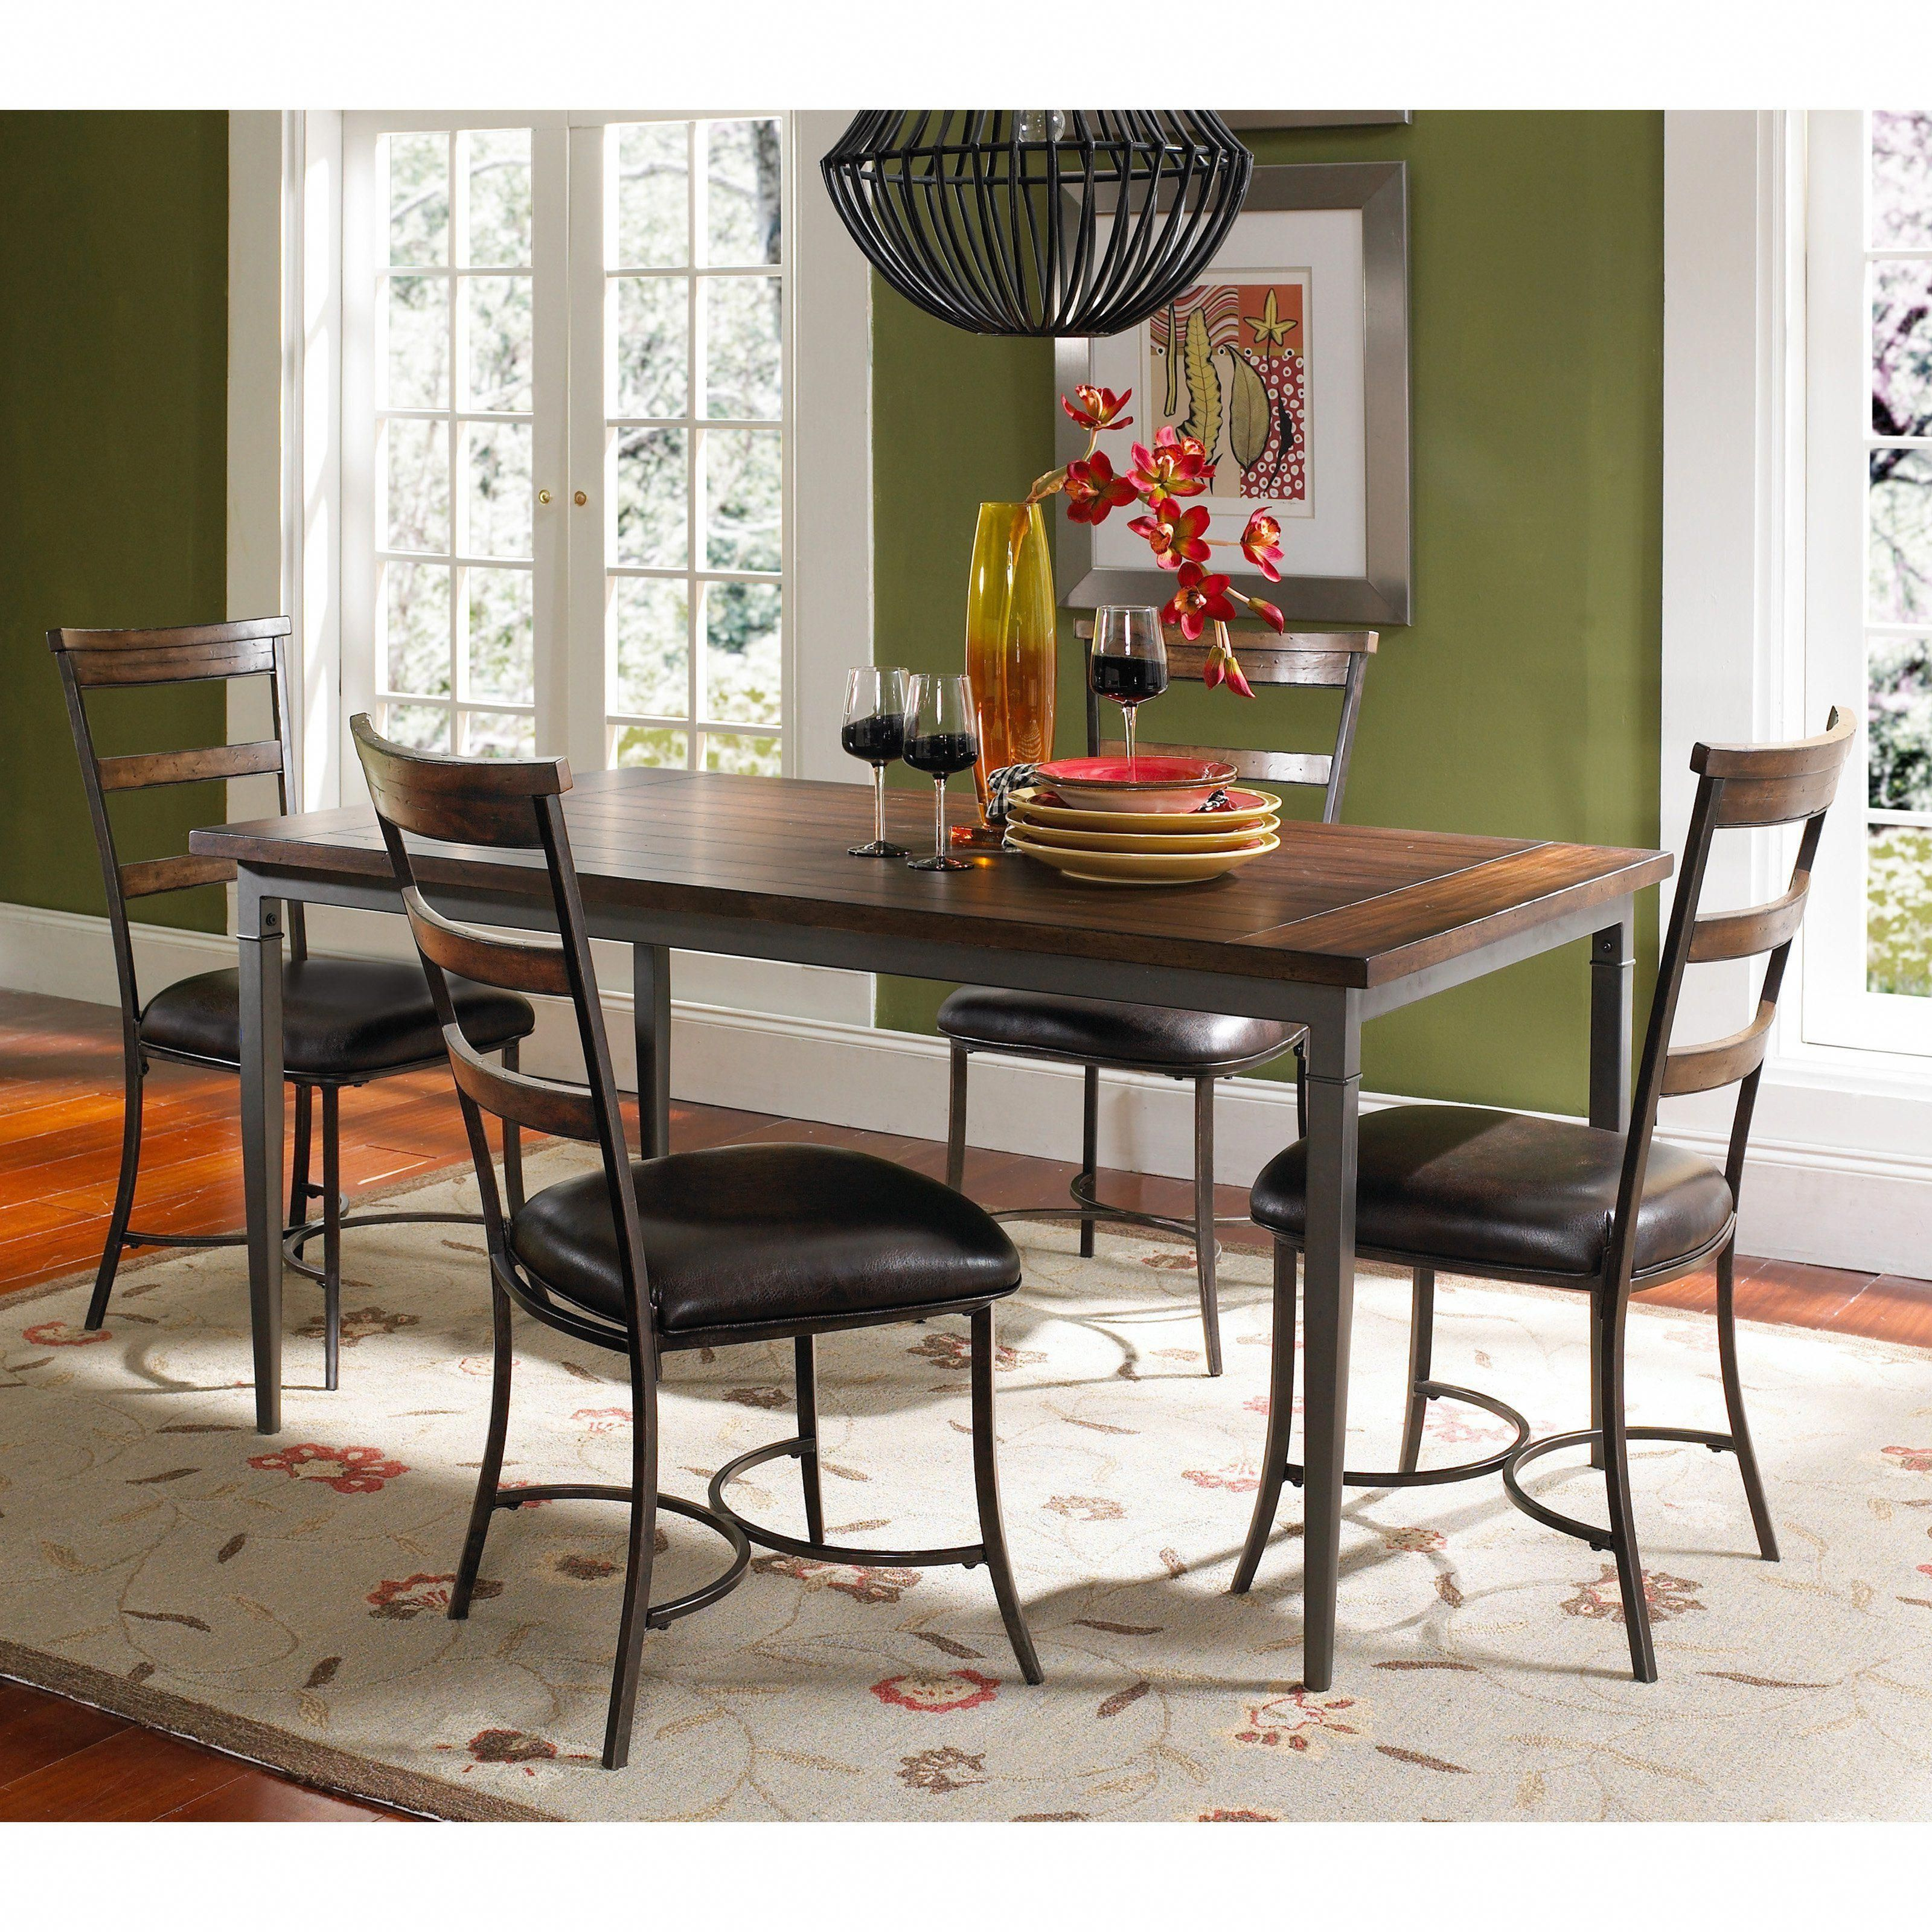 Hillsdale cameron piece counter height rectangle wood dining set